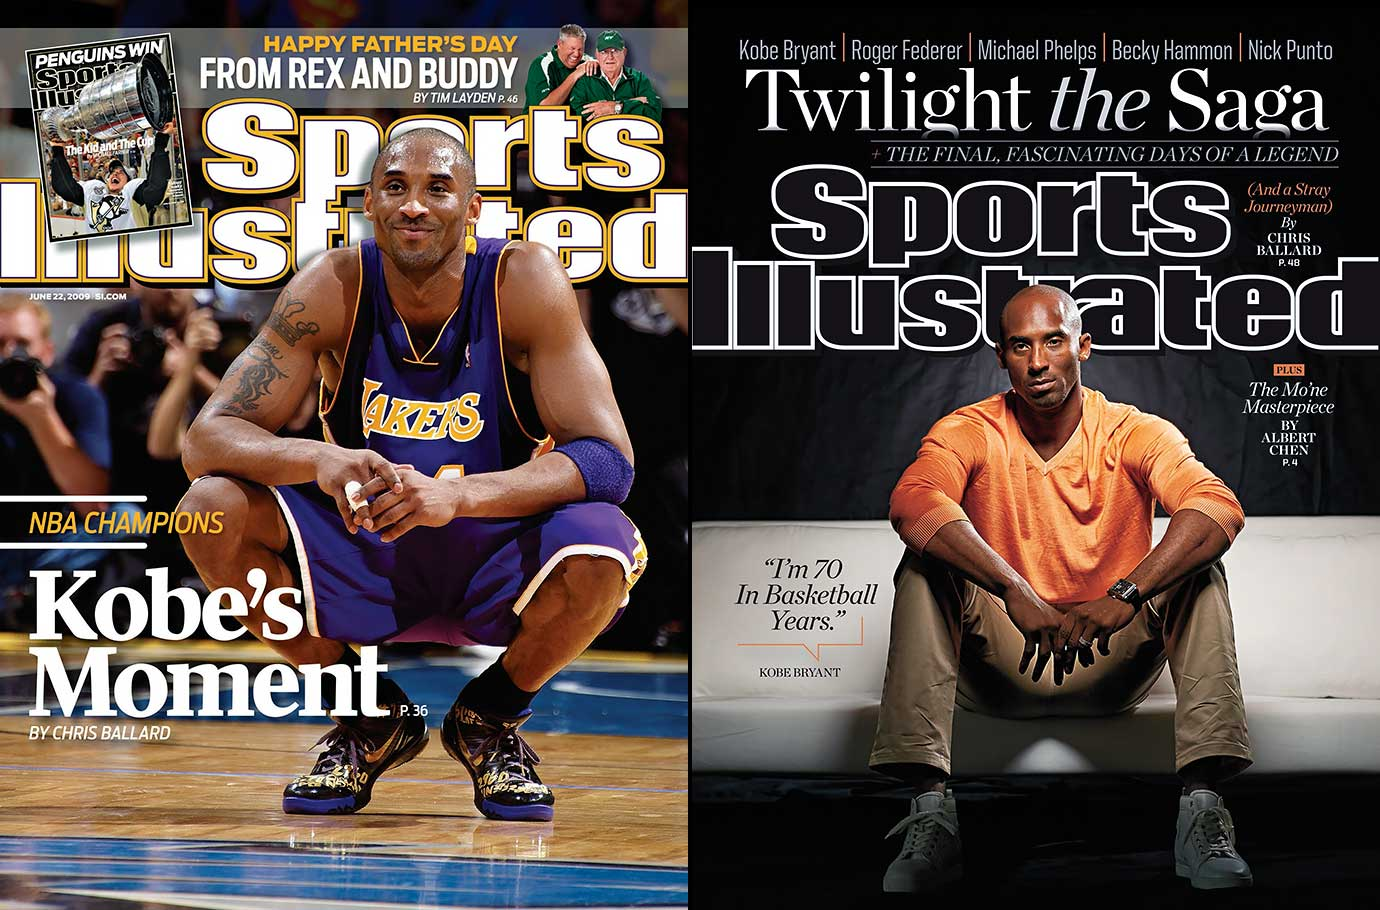 Kobe Bryant retired as one of the greatest NBA players of all time. In his 20-year NBA career, Kobe was named an All-Star 18 times and is currently third all time on the NBA scoring list. He has won five NBA titles, two finals MVPs, one regular season MVP and he is an 11-time All-NBA first team. The leading scorer in Los Angeles Lakers history, Kobe has also led the 2008 and 2012 US Olympic team to gold medals.